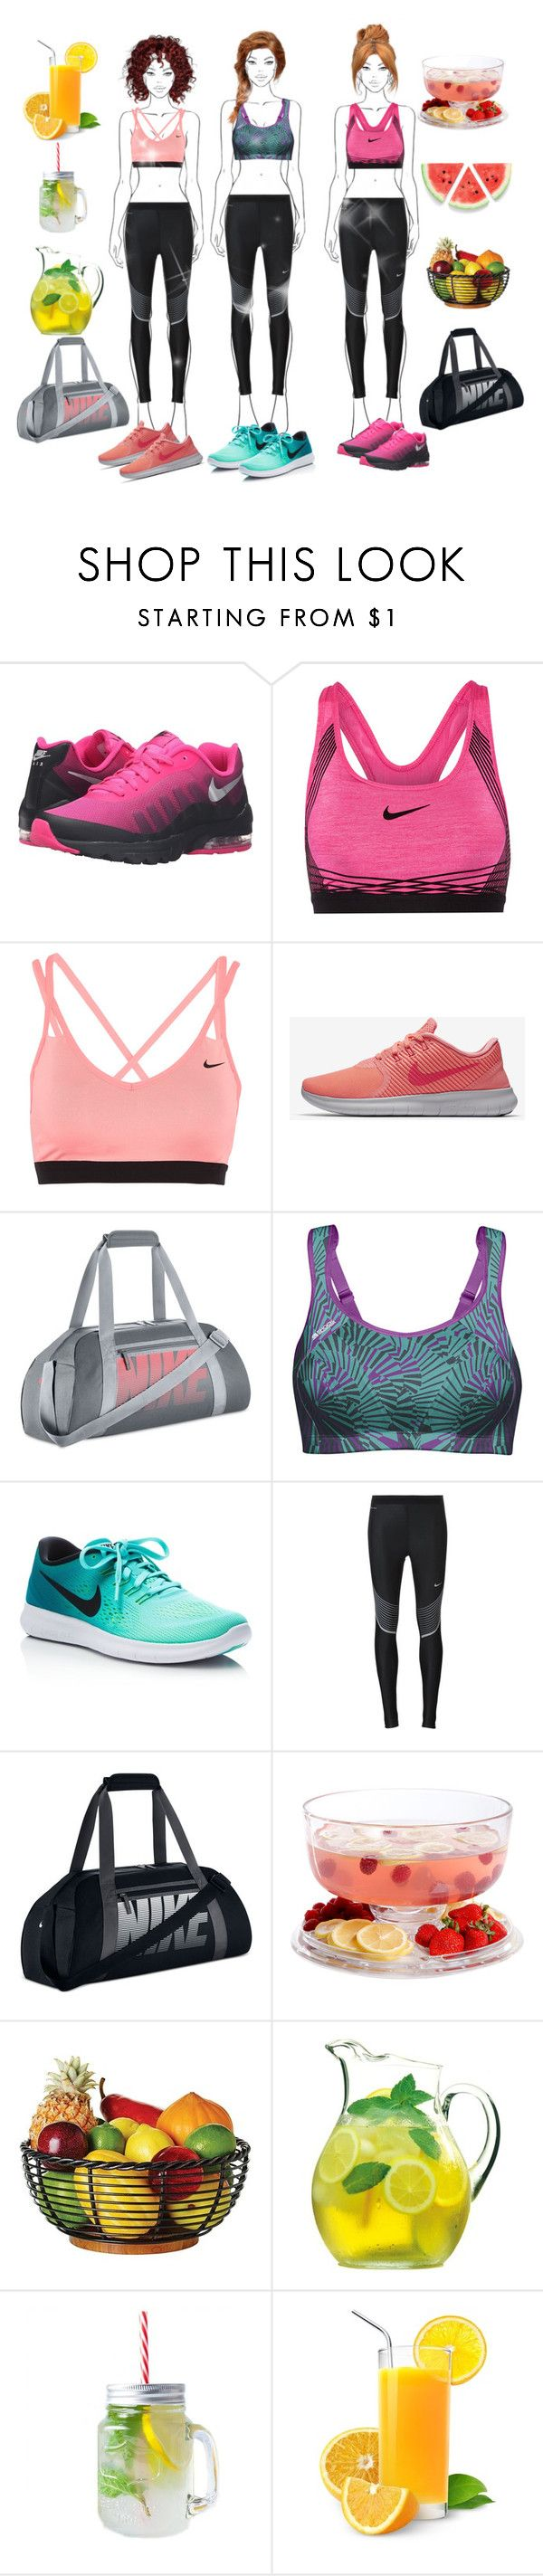 """💪Healty Girls 💪"" by gulokmini ❤ liked on Polyvore featuring NIKE, Shock Absorber, Gibson and Luigi Bormioli"